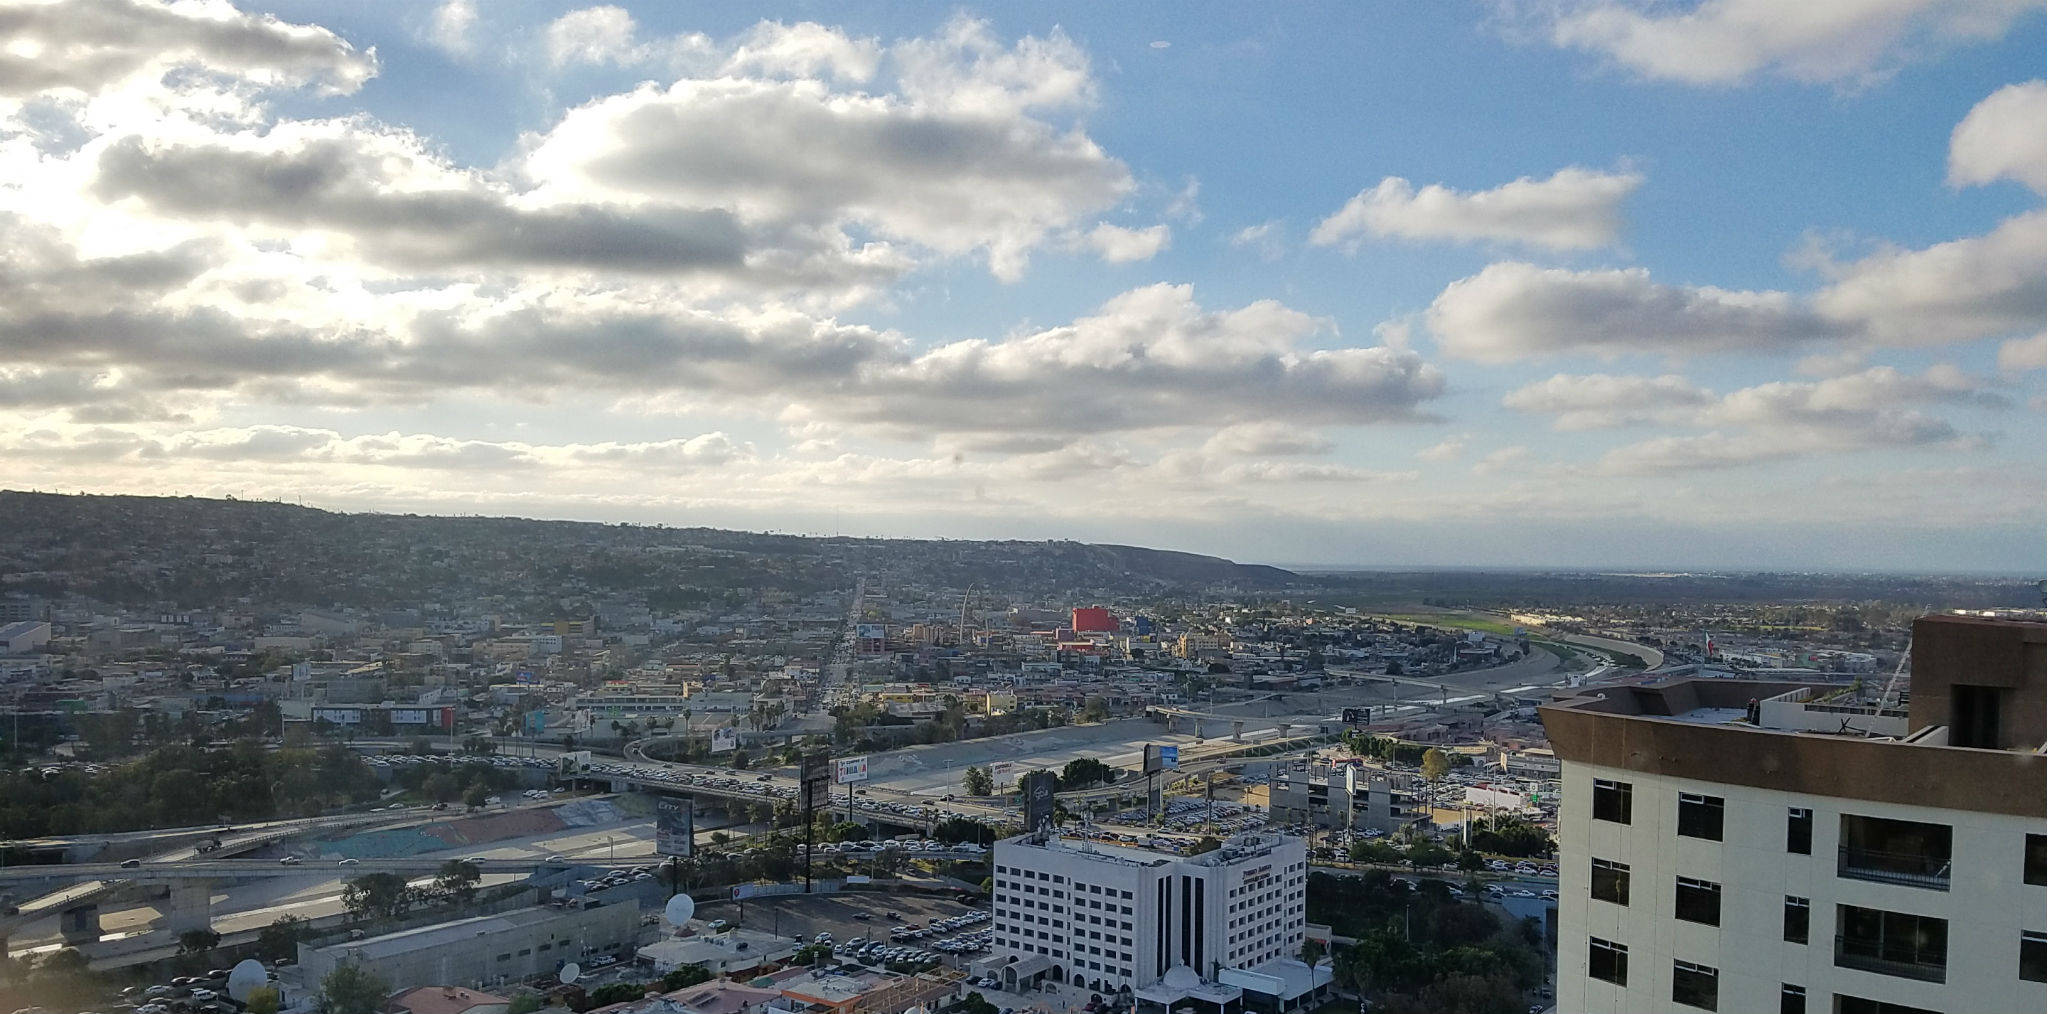 Downtown Tijuana from the Towers